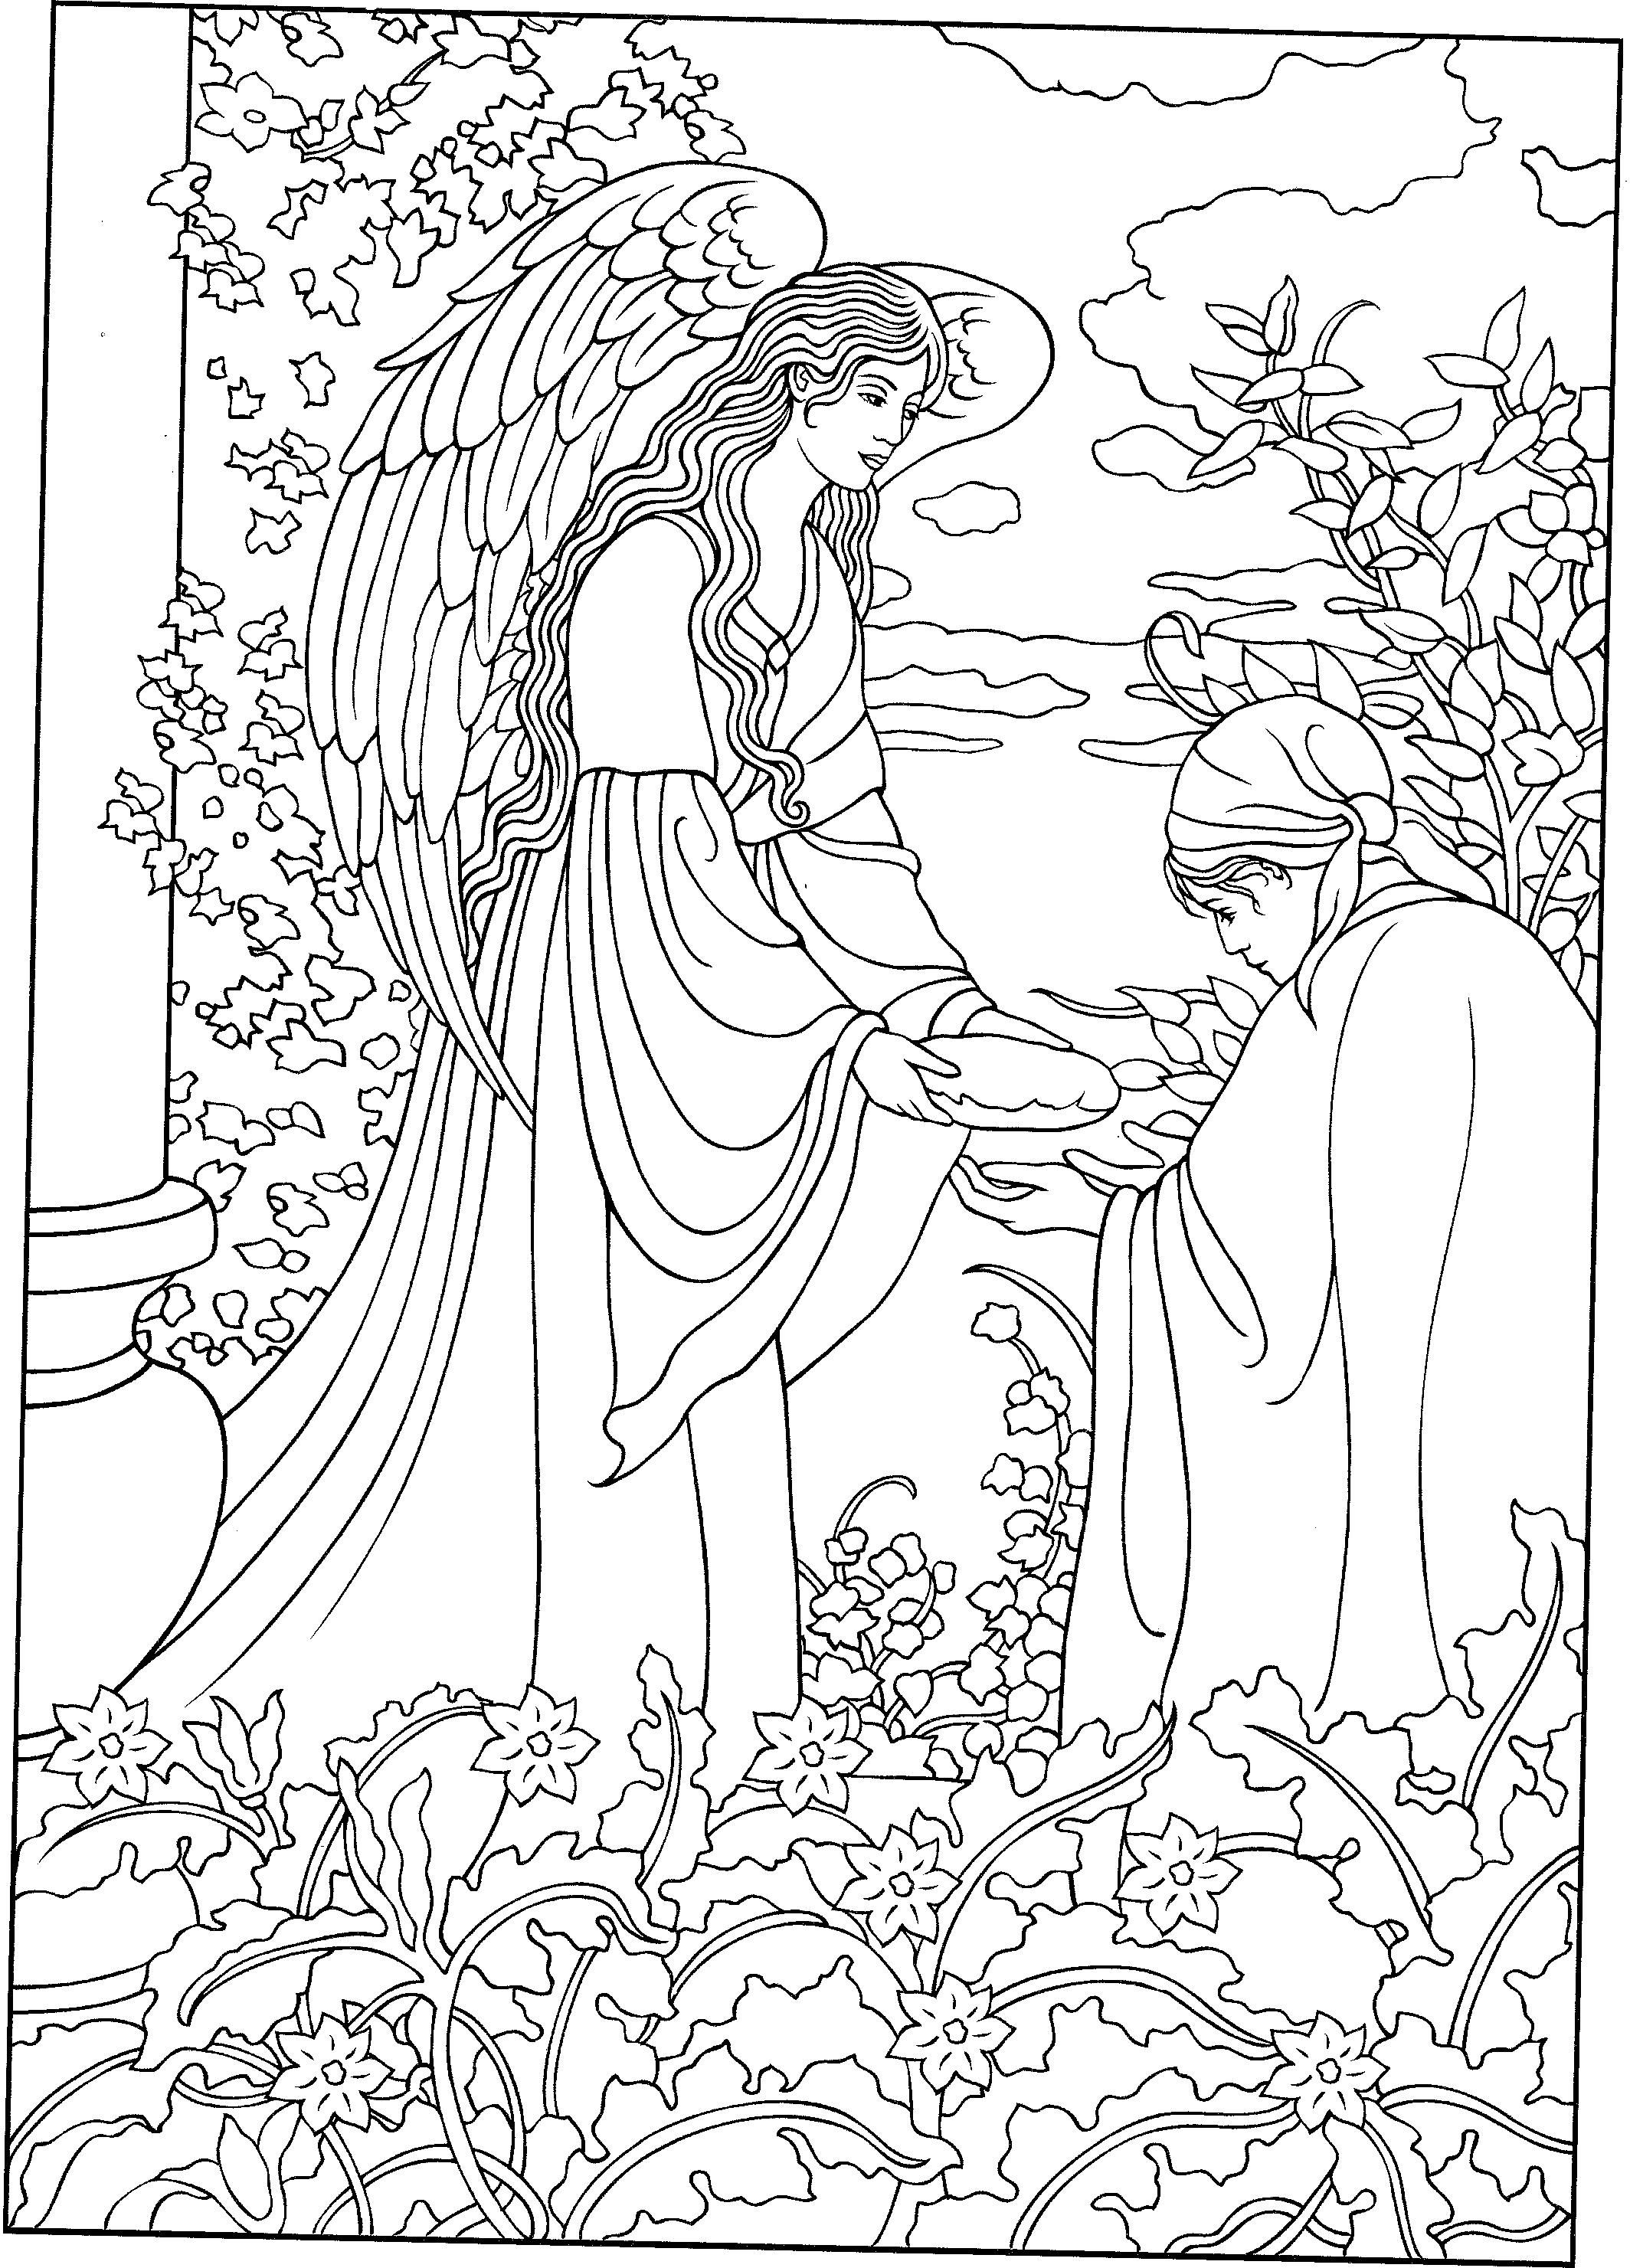 coloring book pages angels - photo#44